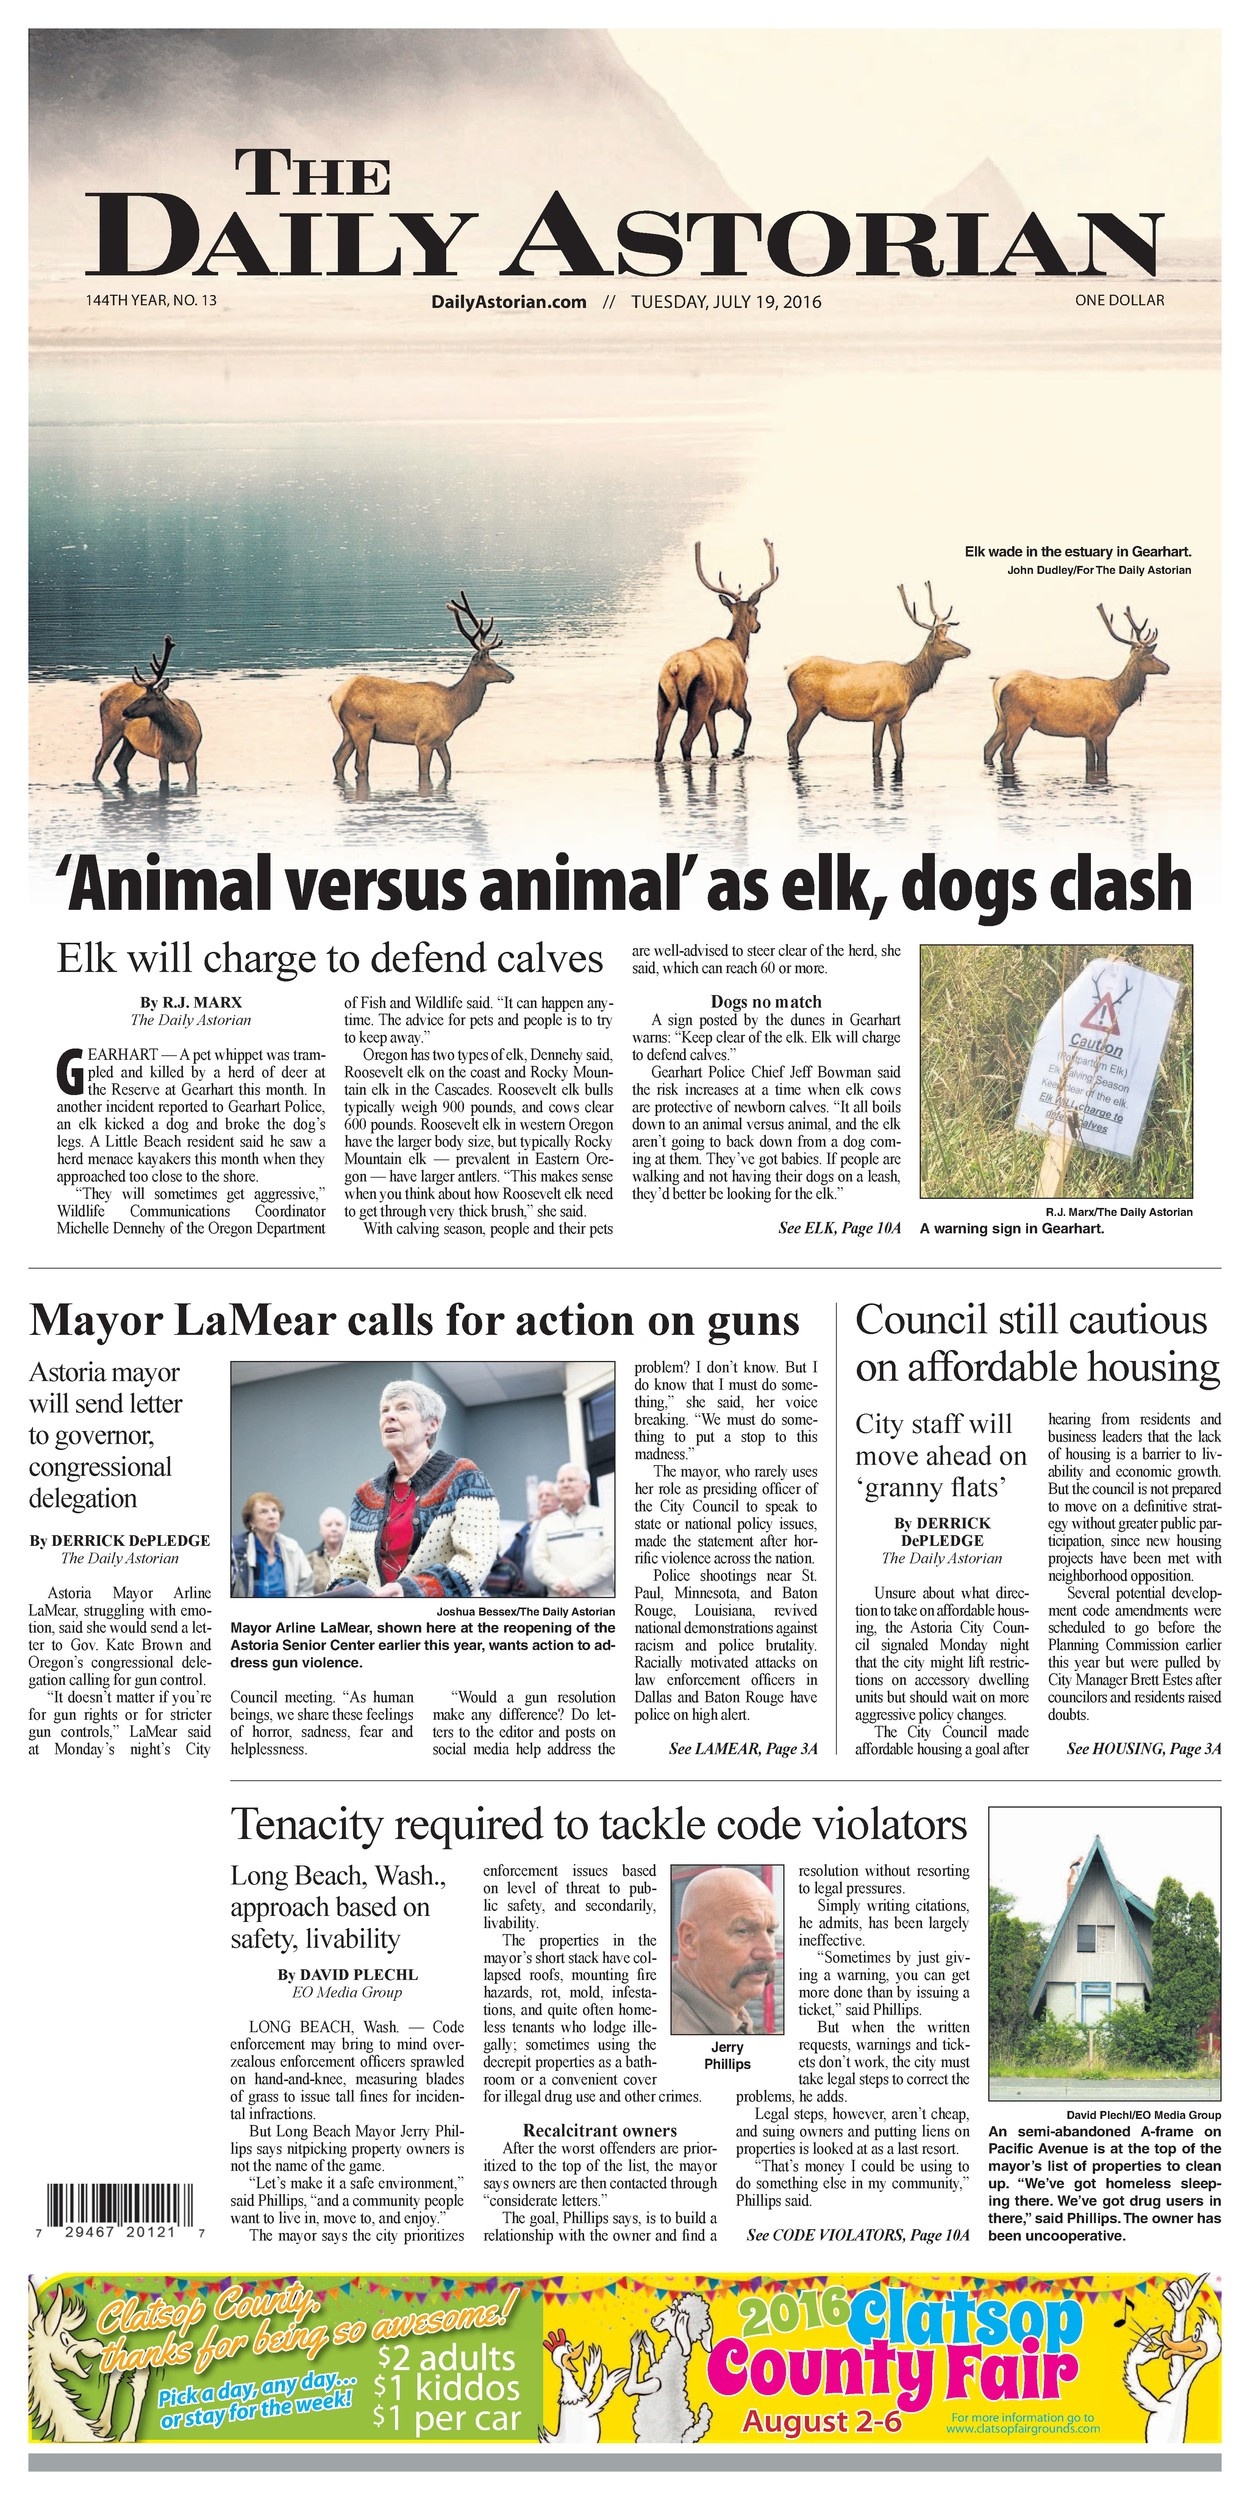 The Daily Astorian in Astoria, Oregon, took first place in its circulation category in the Front Page contest. Judges praised its mix of good writing, tight headlines and the high-quality visual approach of its front pages.